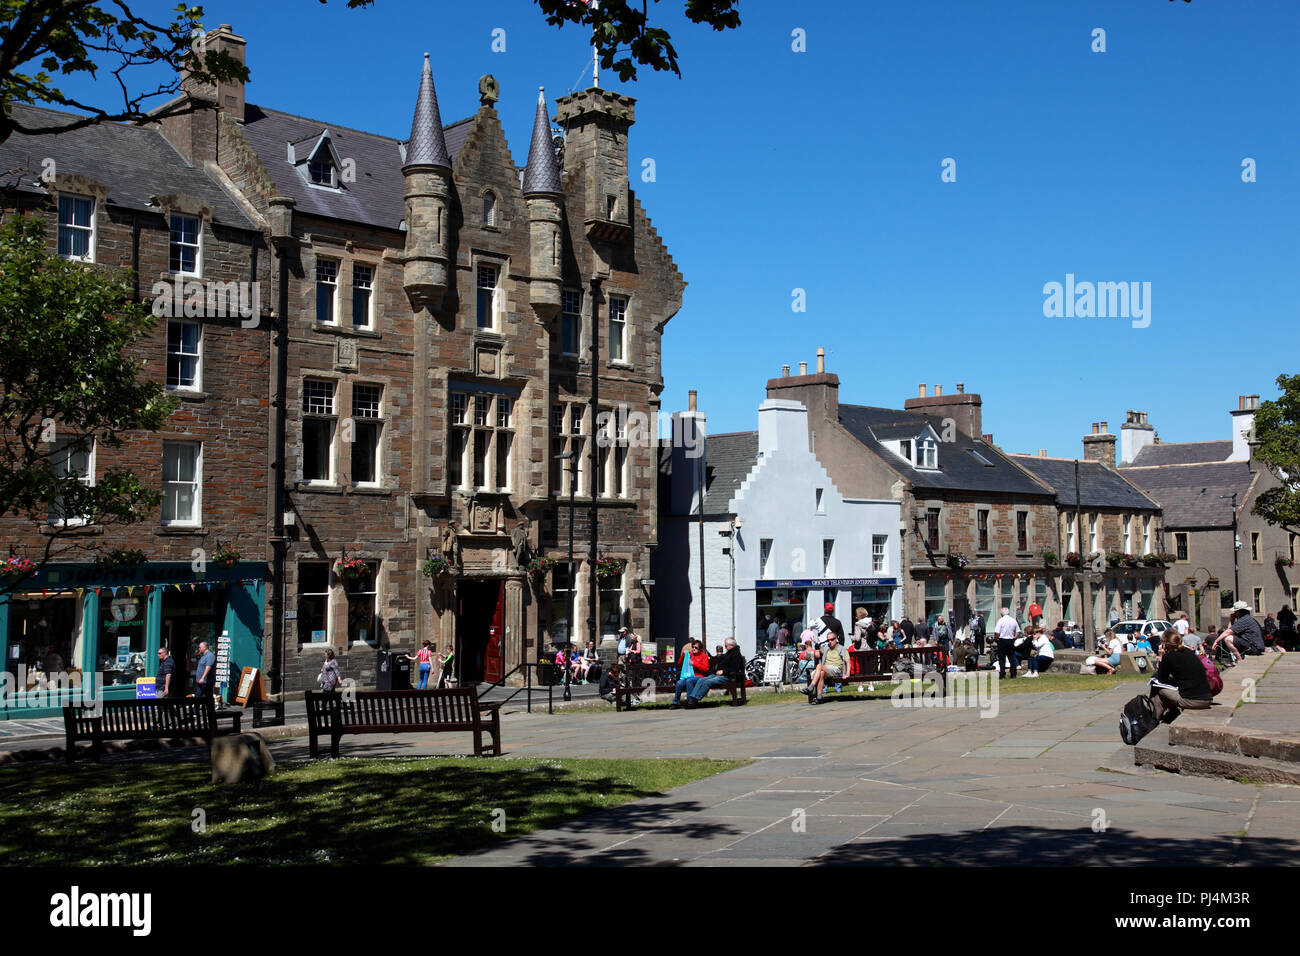 The centre of Kirkwall, Orkney Islands. The nineteenth century baronial Town Hall faces St Magnus Cathedral. - Stock Image